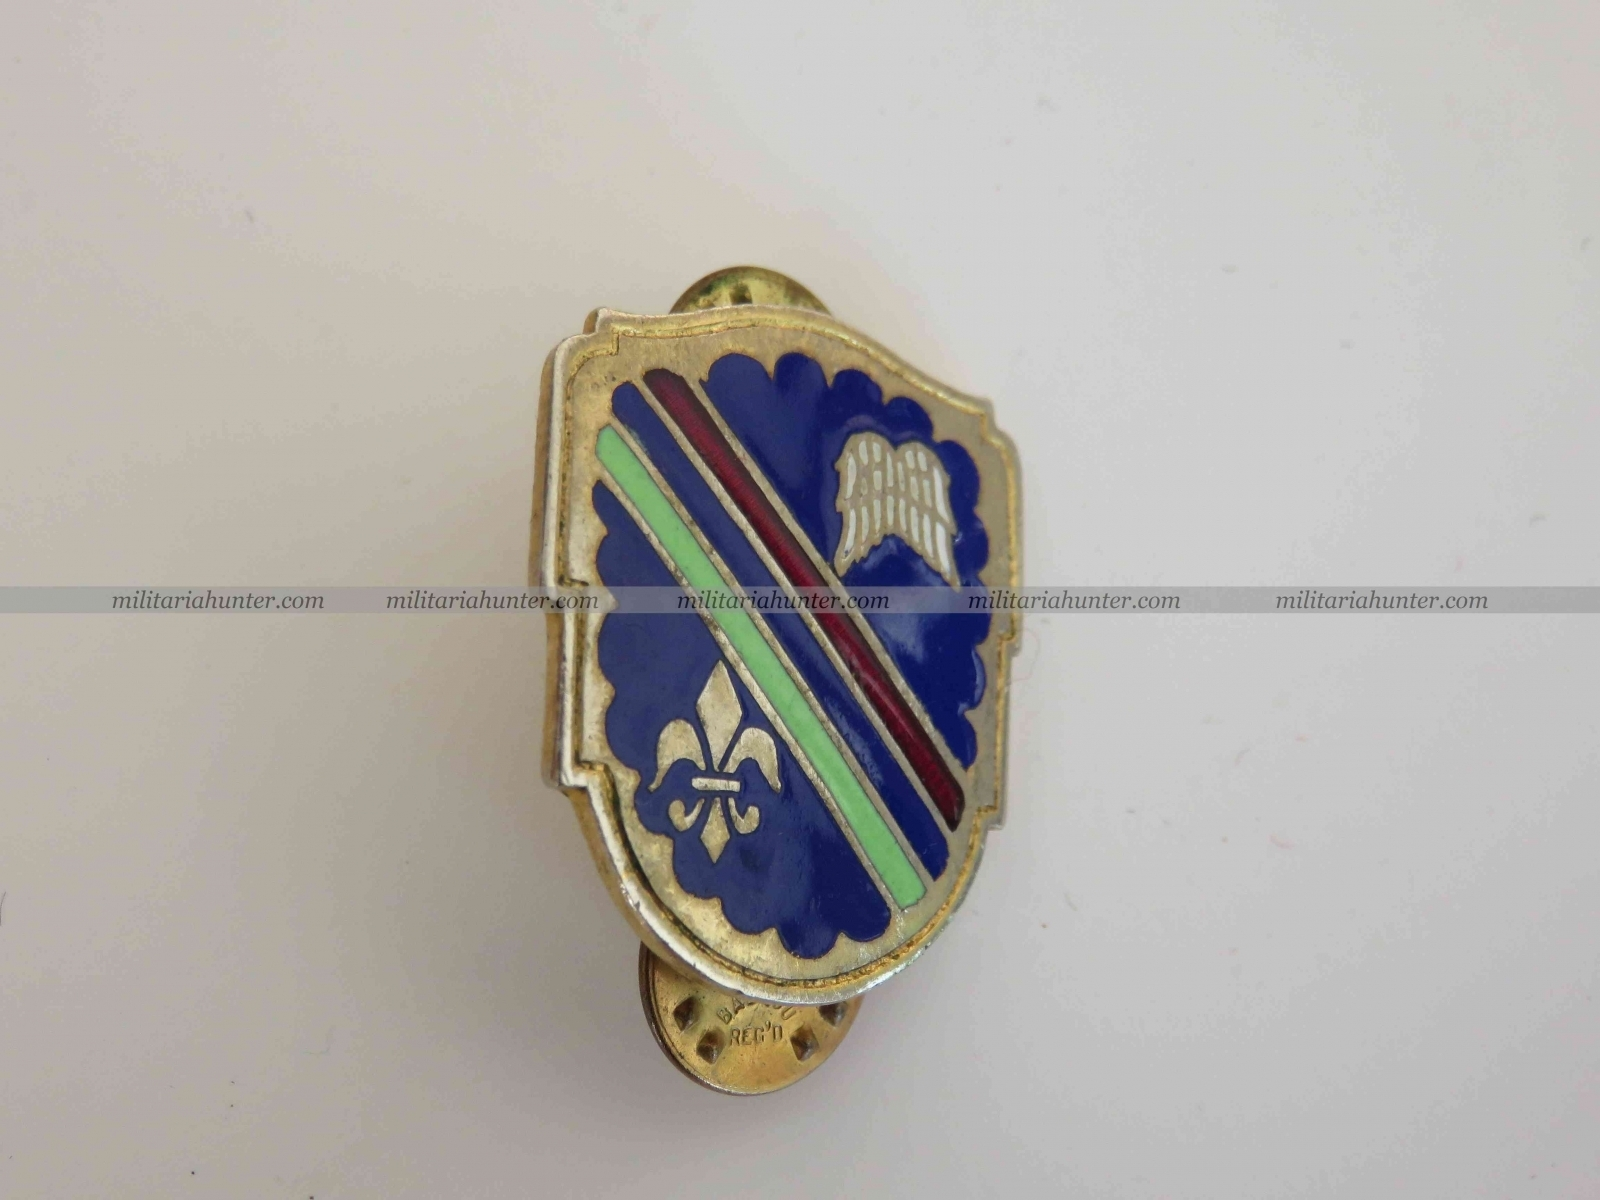 Militaria Hunter - Vente Militaria ww1 ww2 US Army 160th Infantry Regiment crest